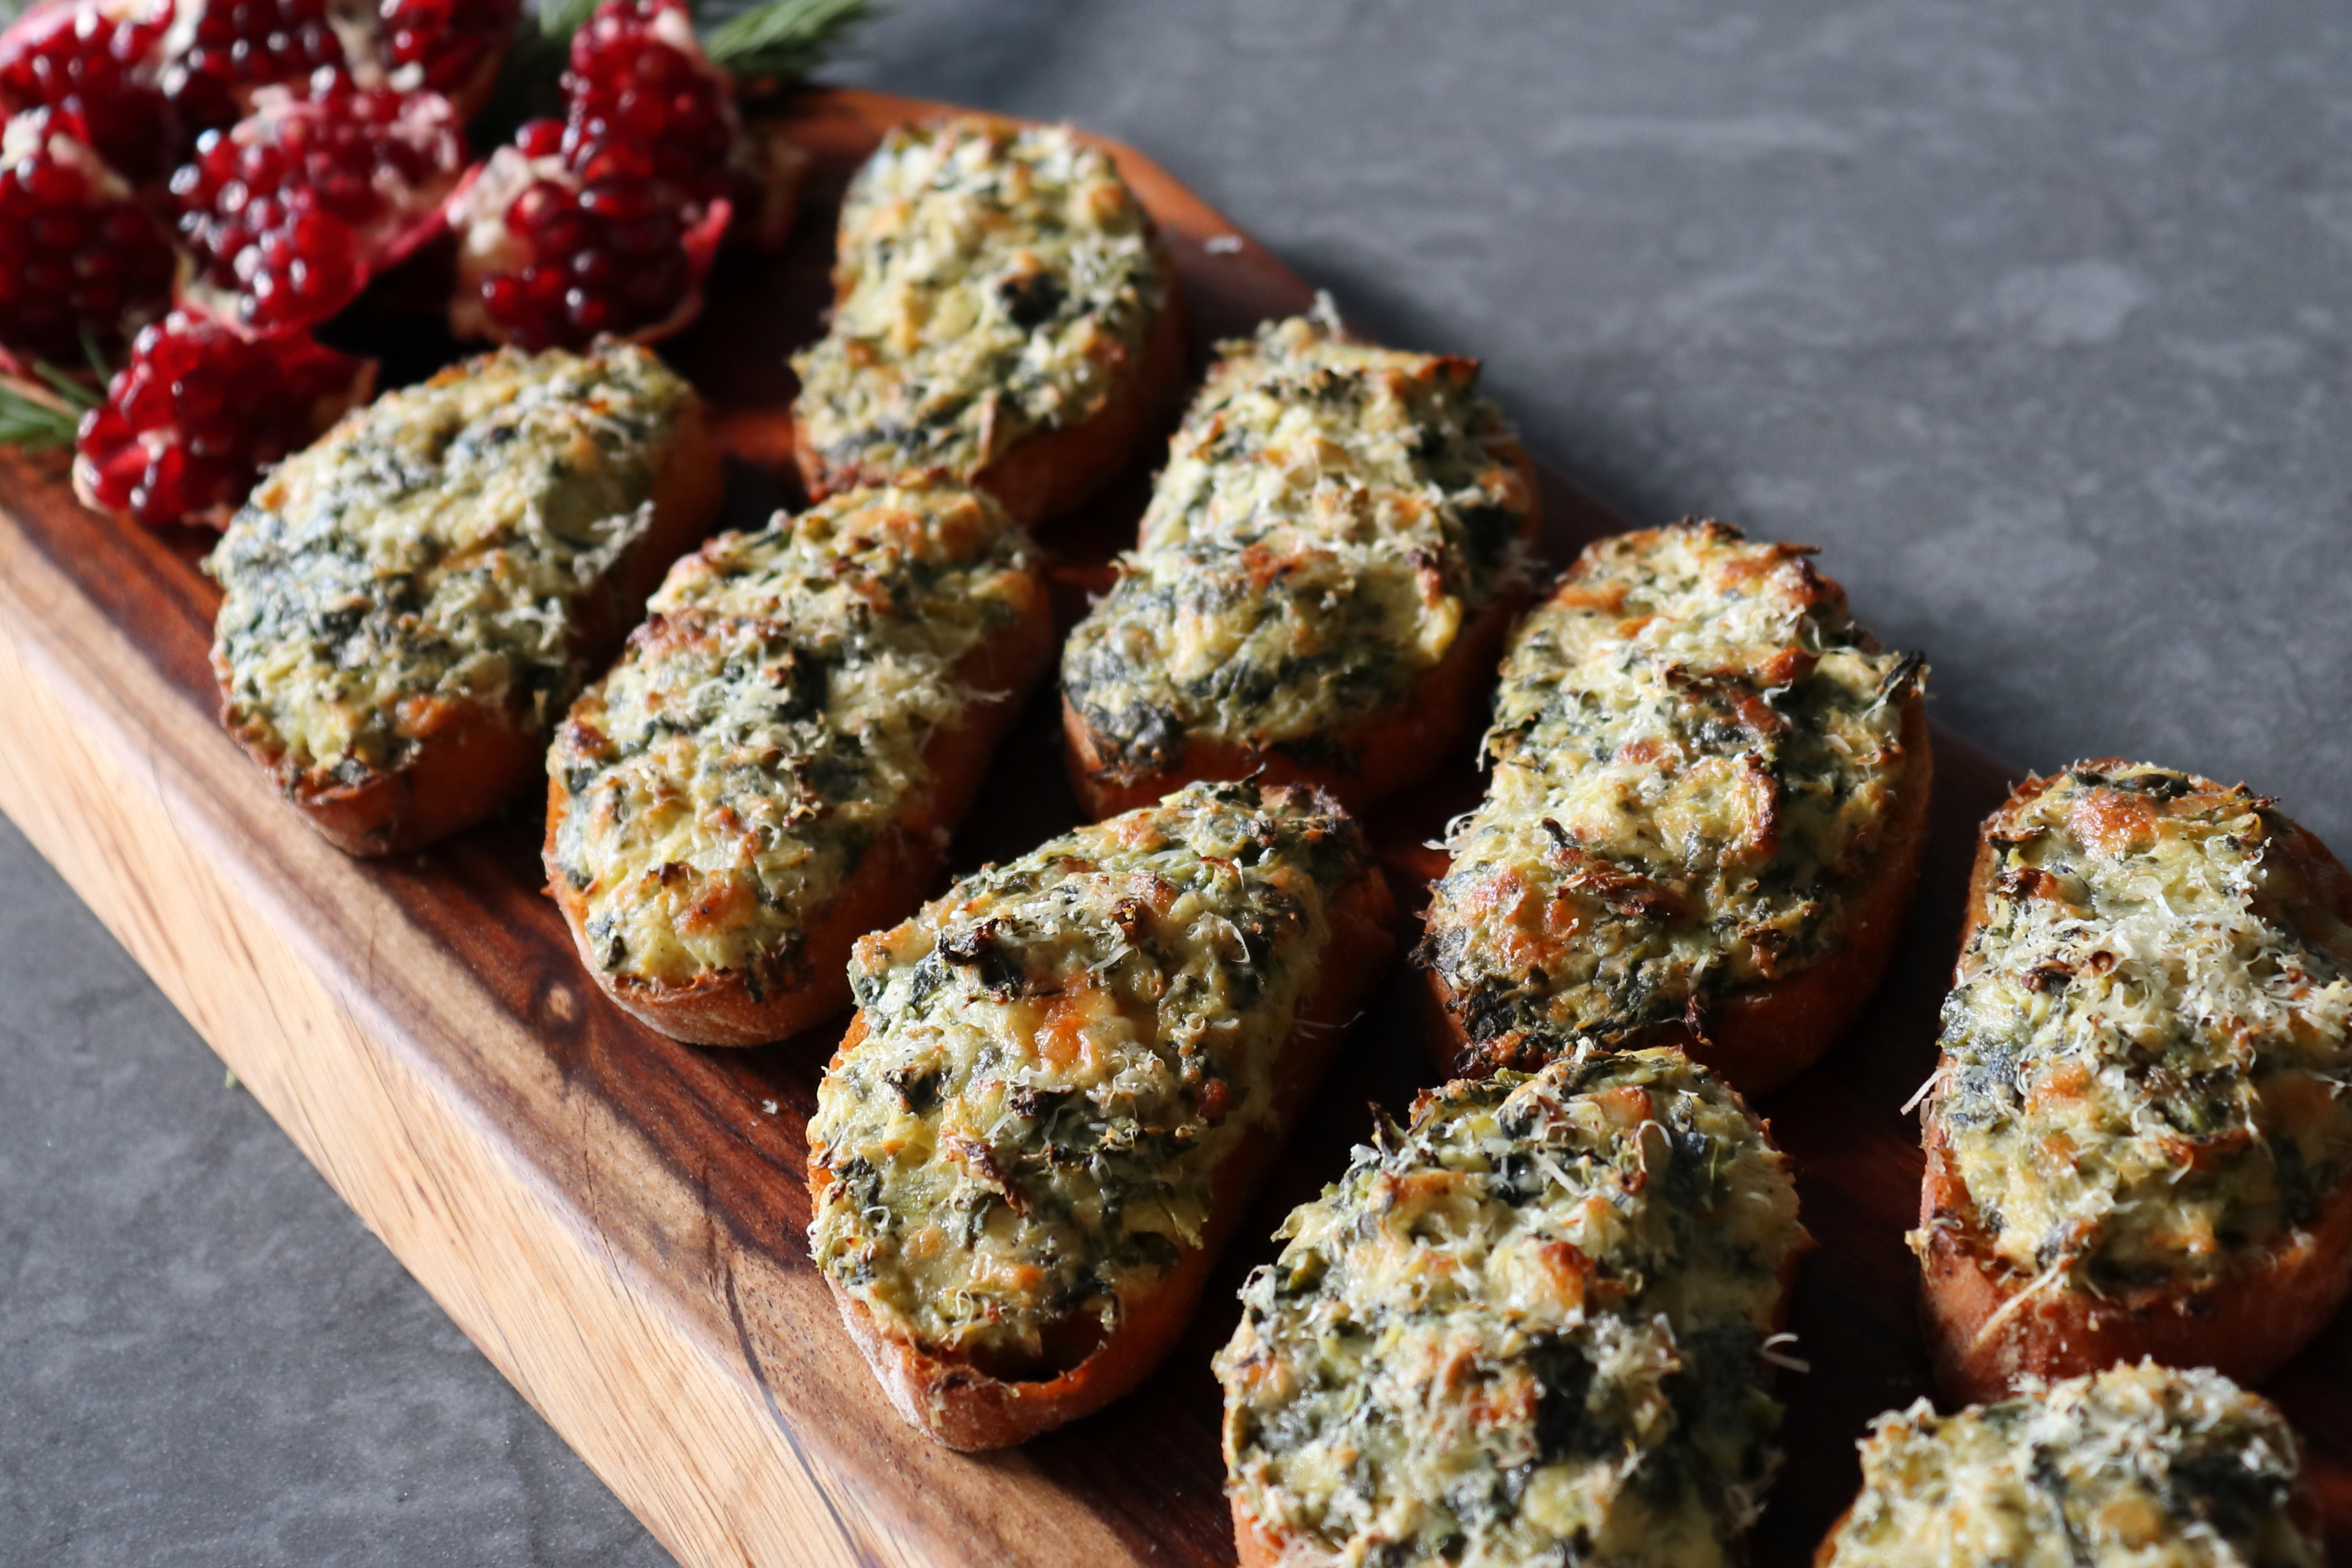 Baked Spinach and Artichoke Toasts